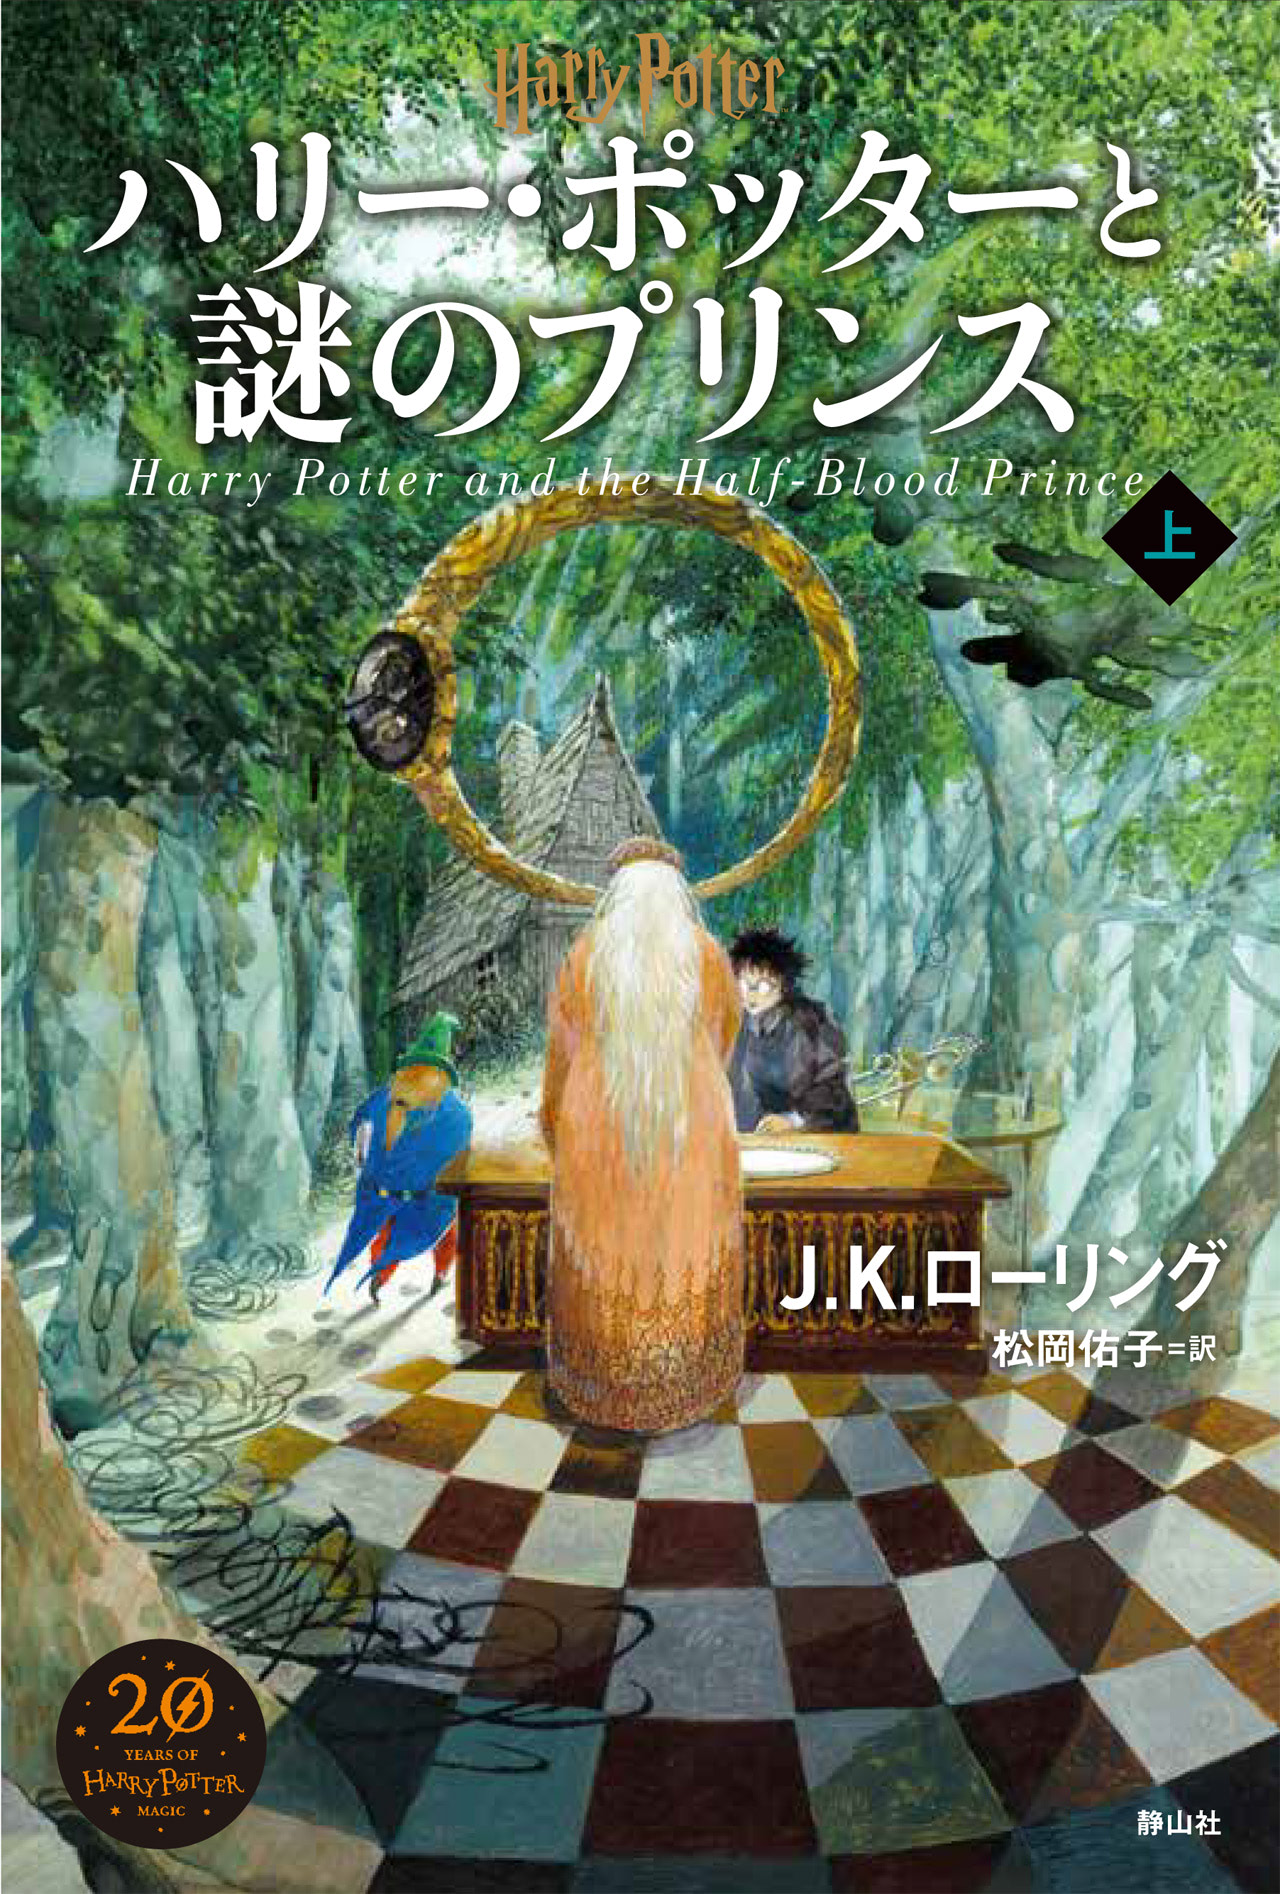 'Half-Blood Prince' Japanese 20th anniversary edition (volume 1)